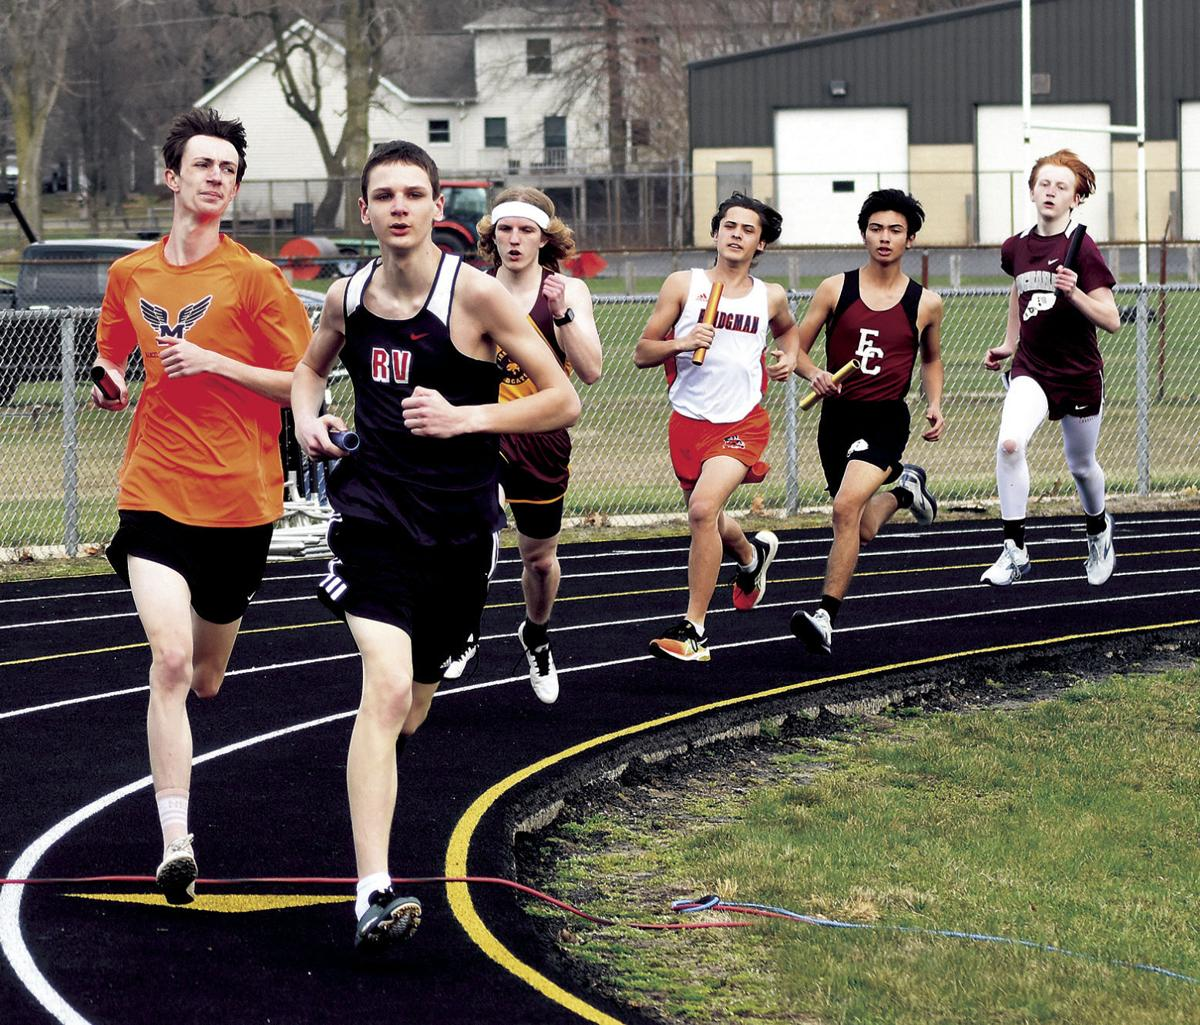 4 8 Sports Track 4 Relay boys RV leads.jpg